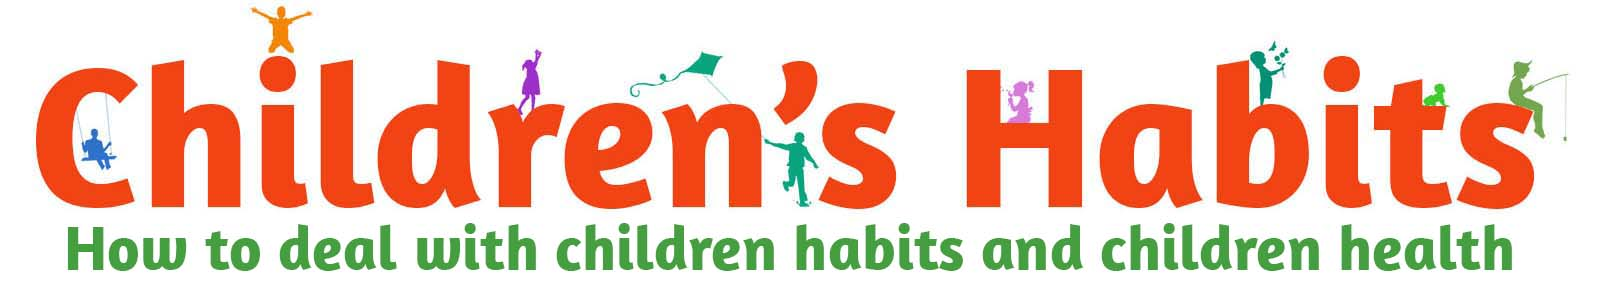 Children's Habits